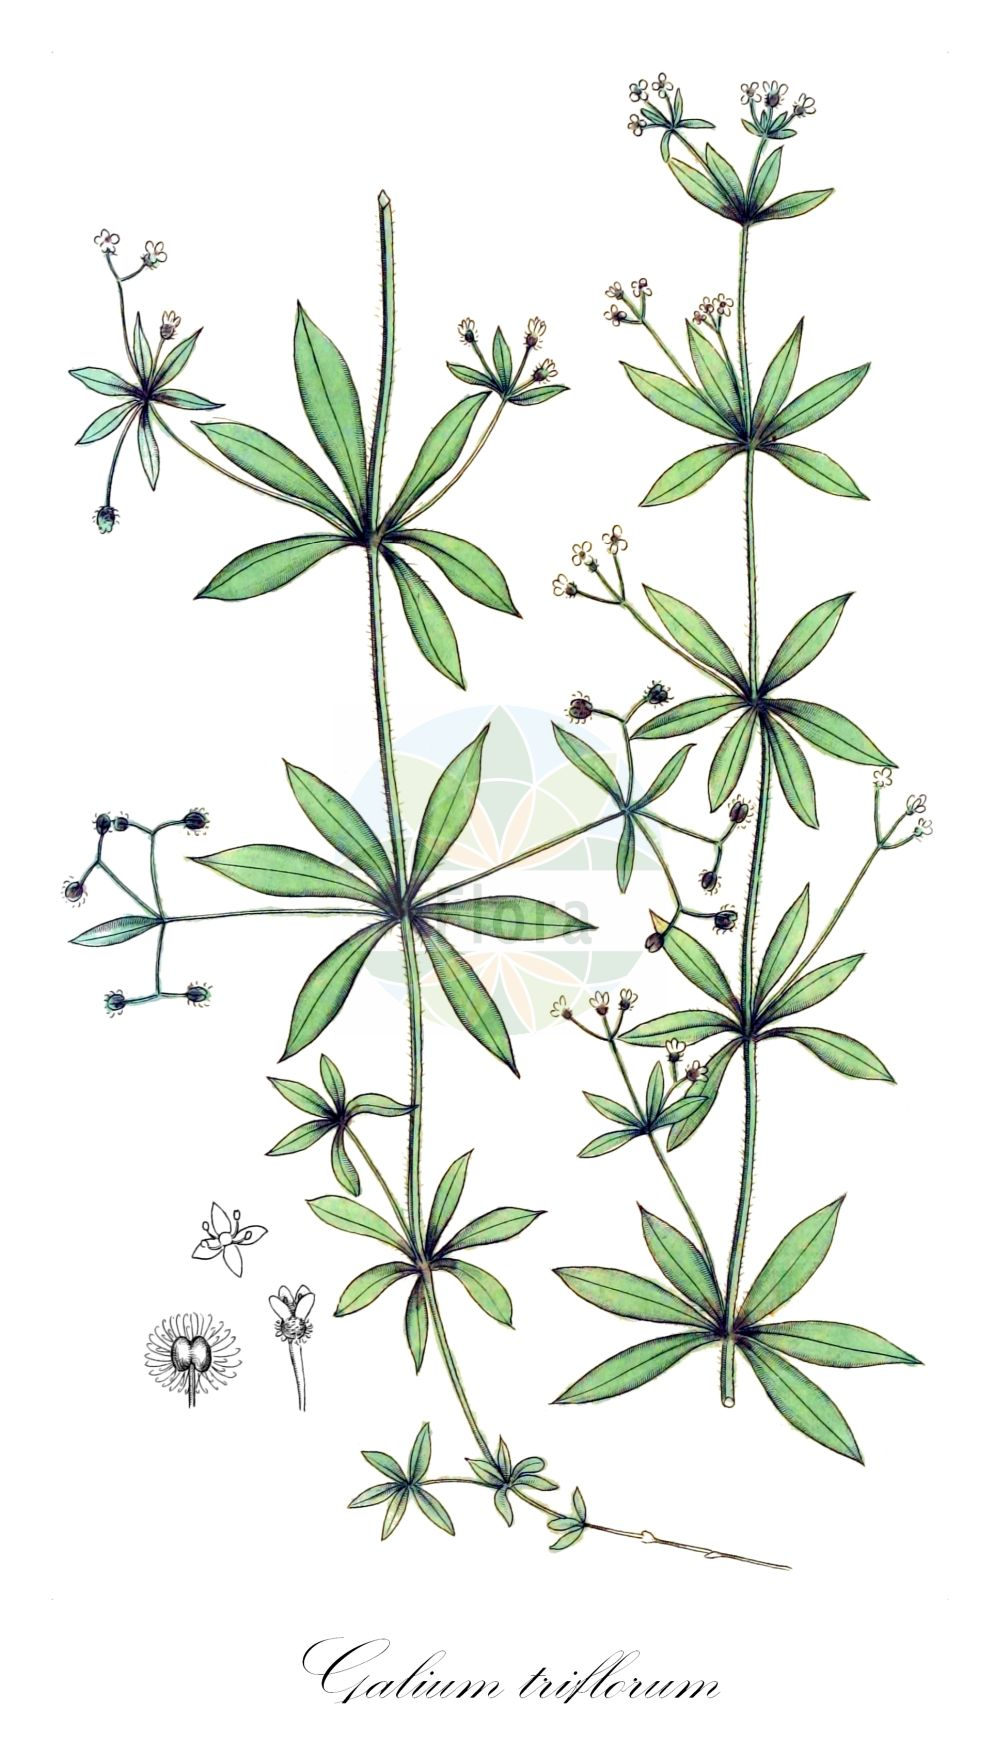 Historische Abbildung von Galium triflorum. Das Bild zeigt Blatt, Bluete, Frucht und Same. ---- Historical Drawing of Galium triflorum.The image is showing leaf, flower, fruit and seed.(Galium triflorum,Galium,Labkraut,Bedstraw,Rubiaceae,Roetegewaechse;Kaffeegewaechse;Krappgewaechse;Labkrautgewaechse,Bedstraw family,Blatt,Bluete,Frucht,Same,leaf,flower,fruit,seed,Palmstruch (1807-1843))